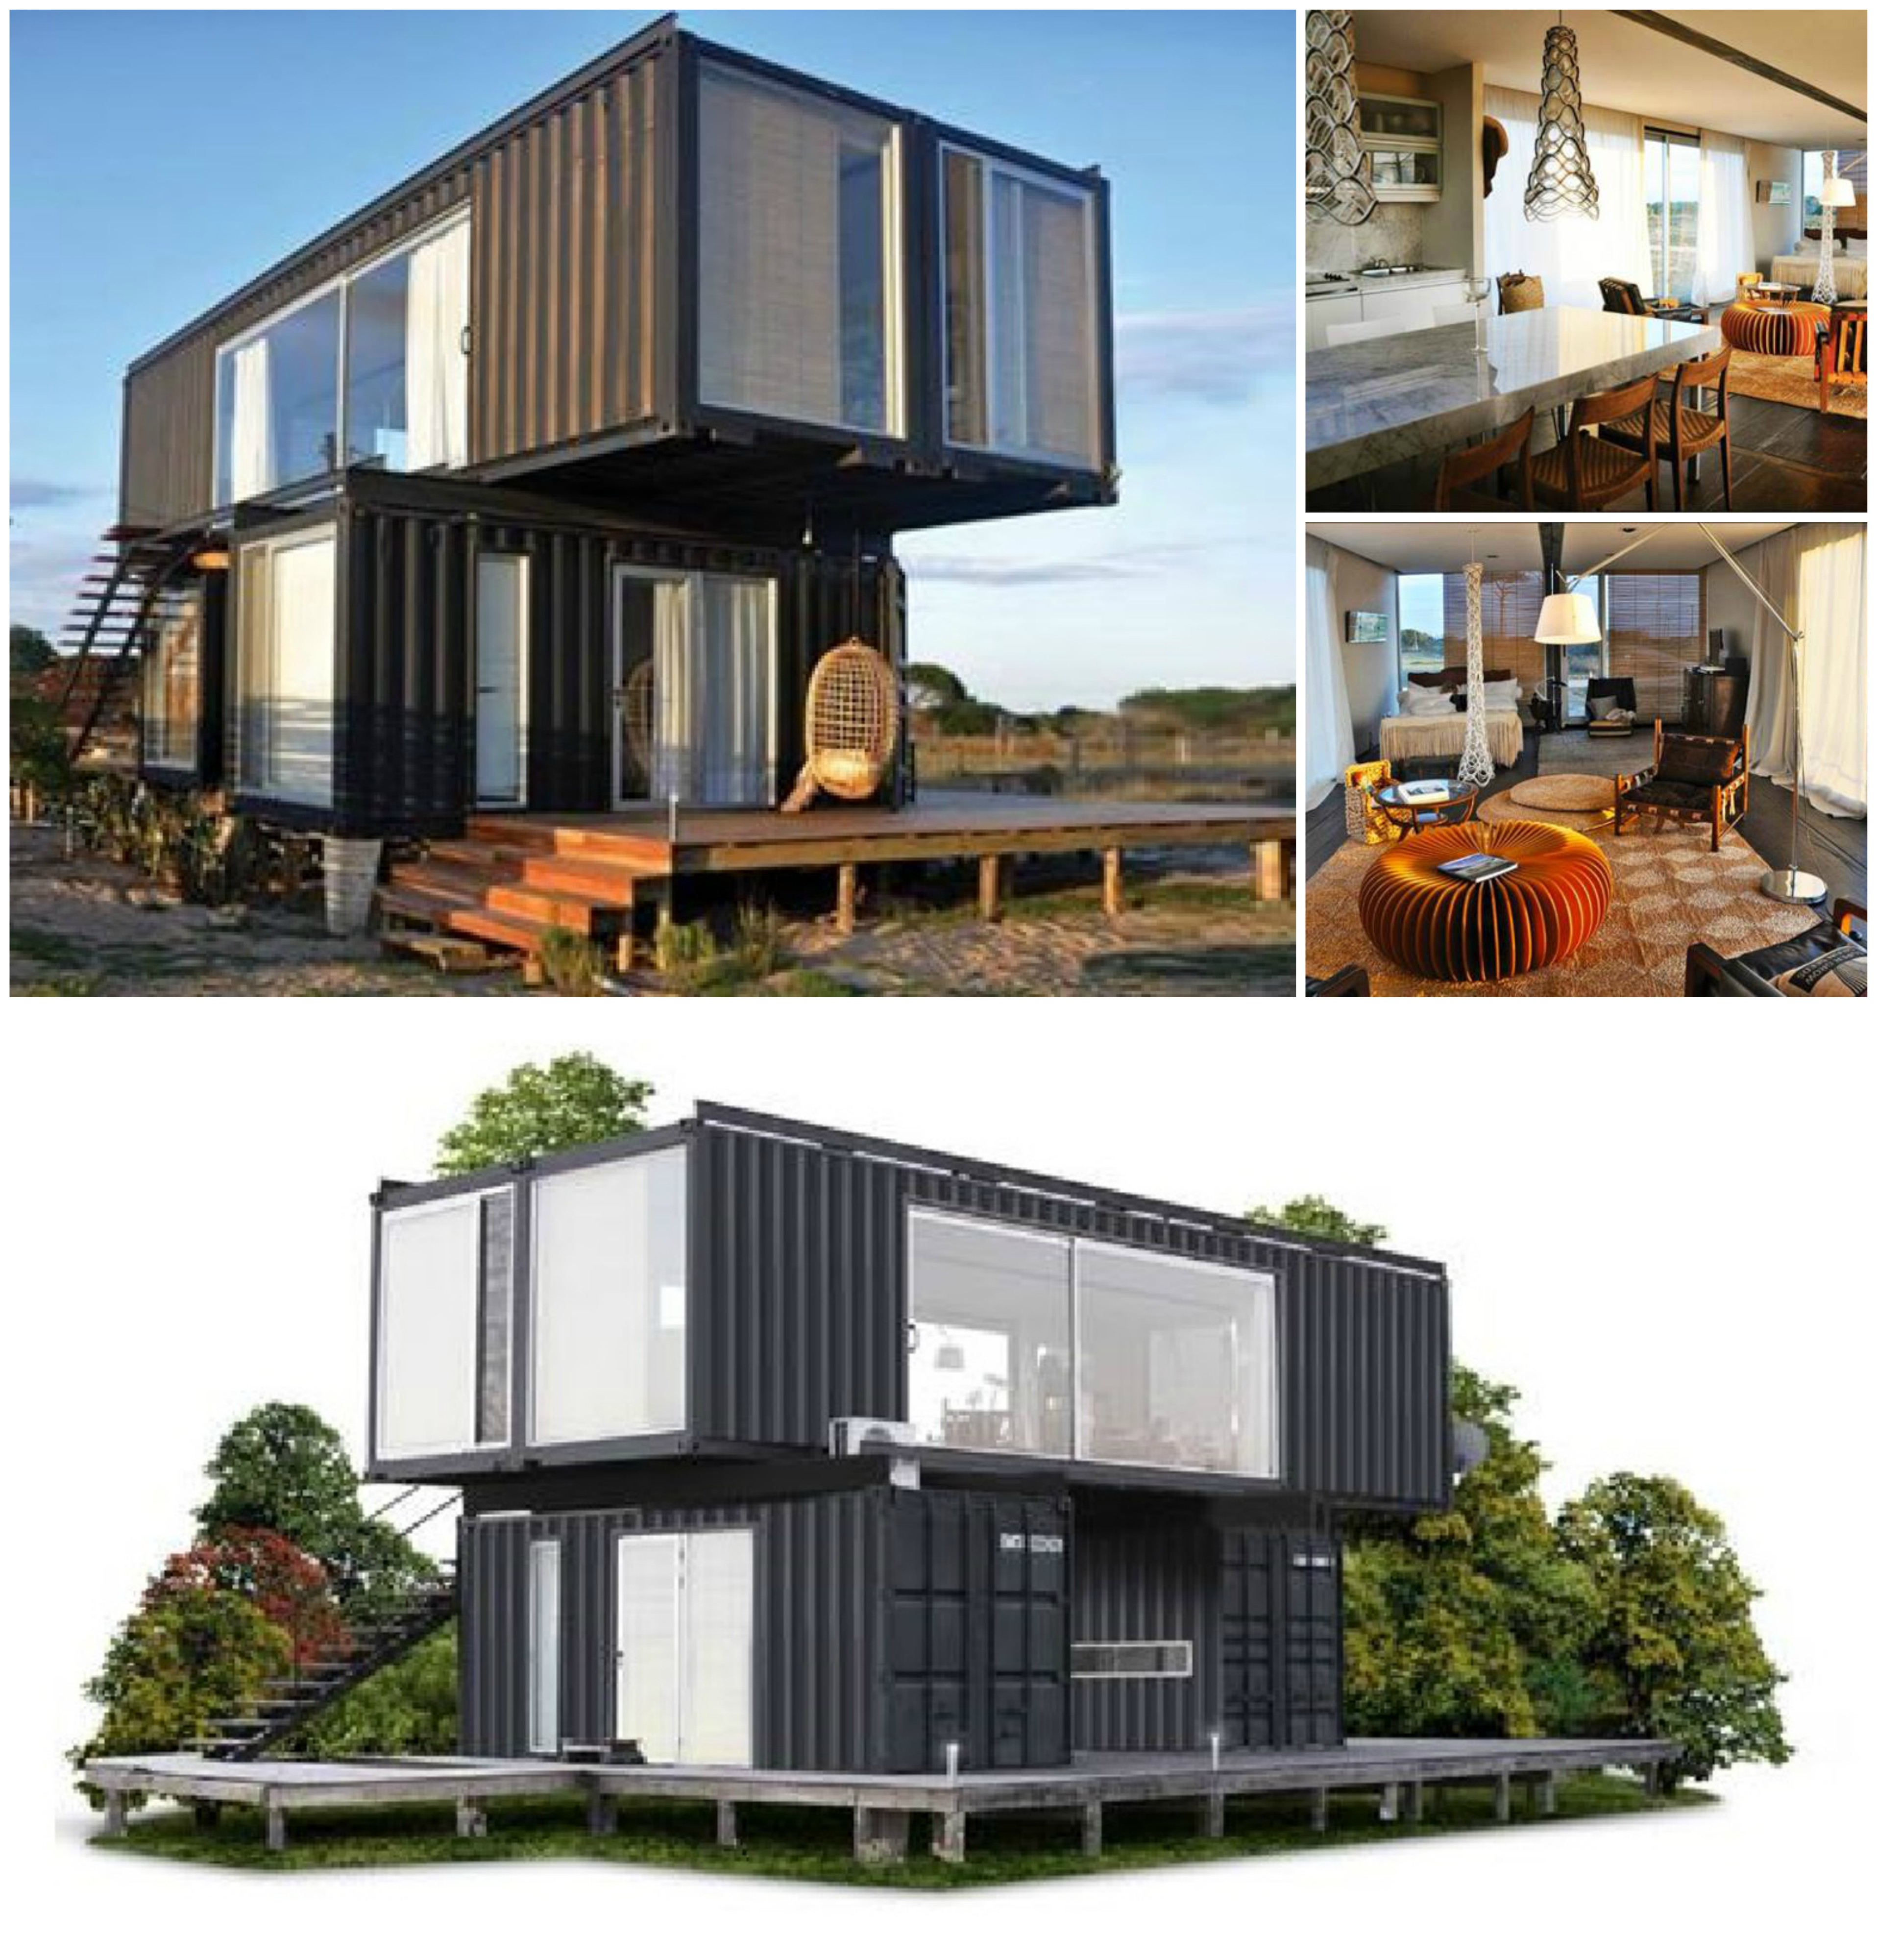 Best Kitchen Gallery: Shipping Container Homes Los Angeles Home Furniture Design of Carolina Beach Container Home on rachelxblog.com